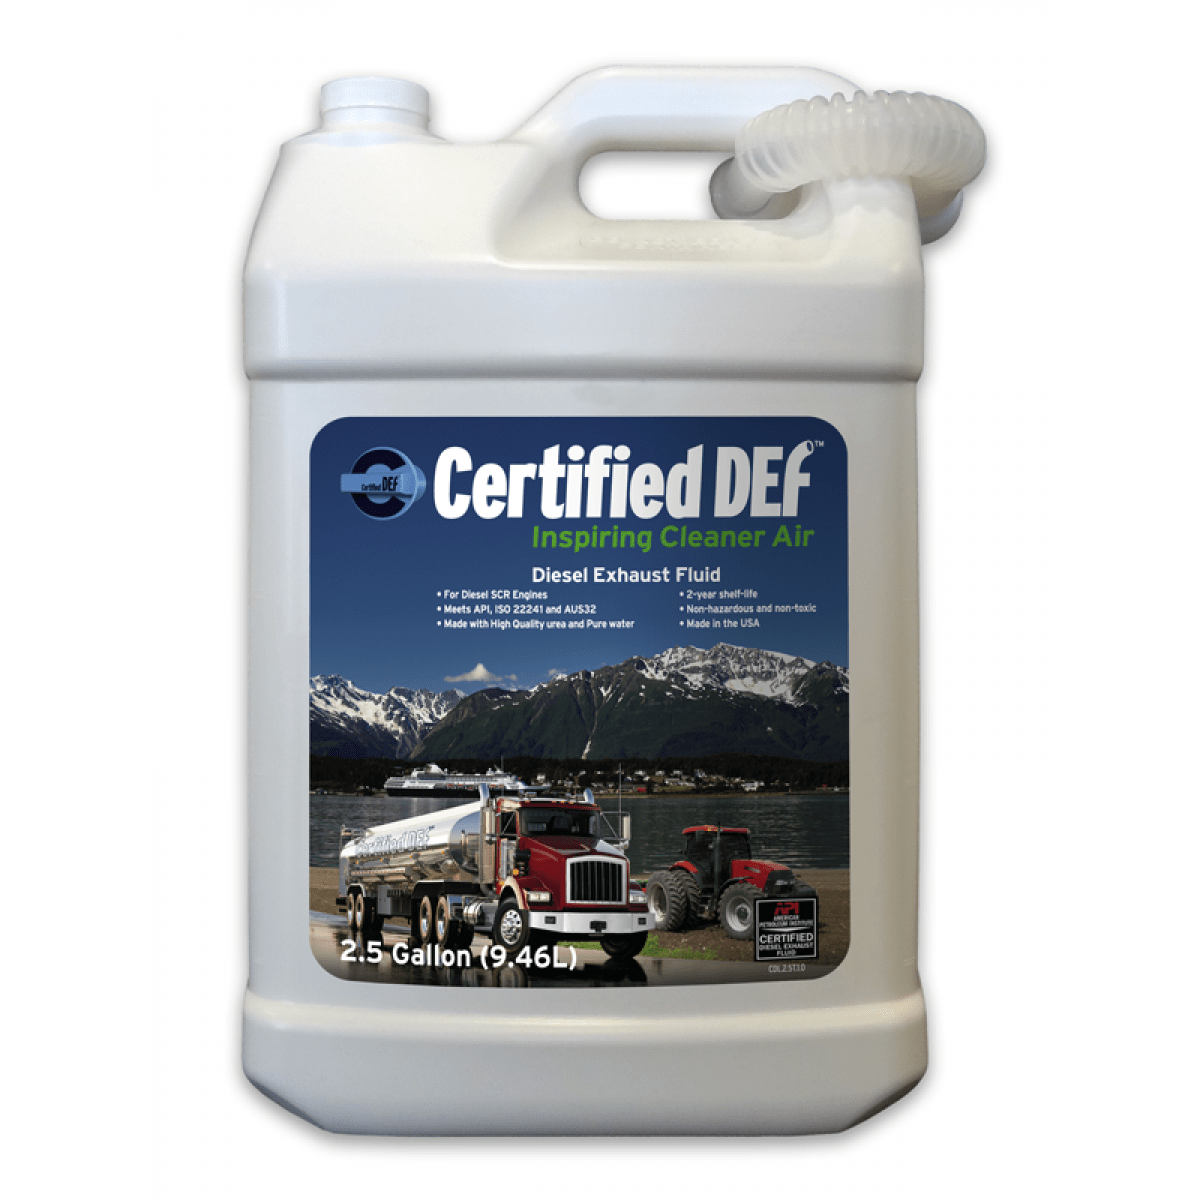 certified def diesel exhaust fluid 1 case afs associated fuel systems inc. Black Bedroom Furniture Sets. Home Design Ideas